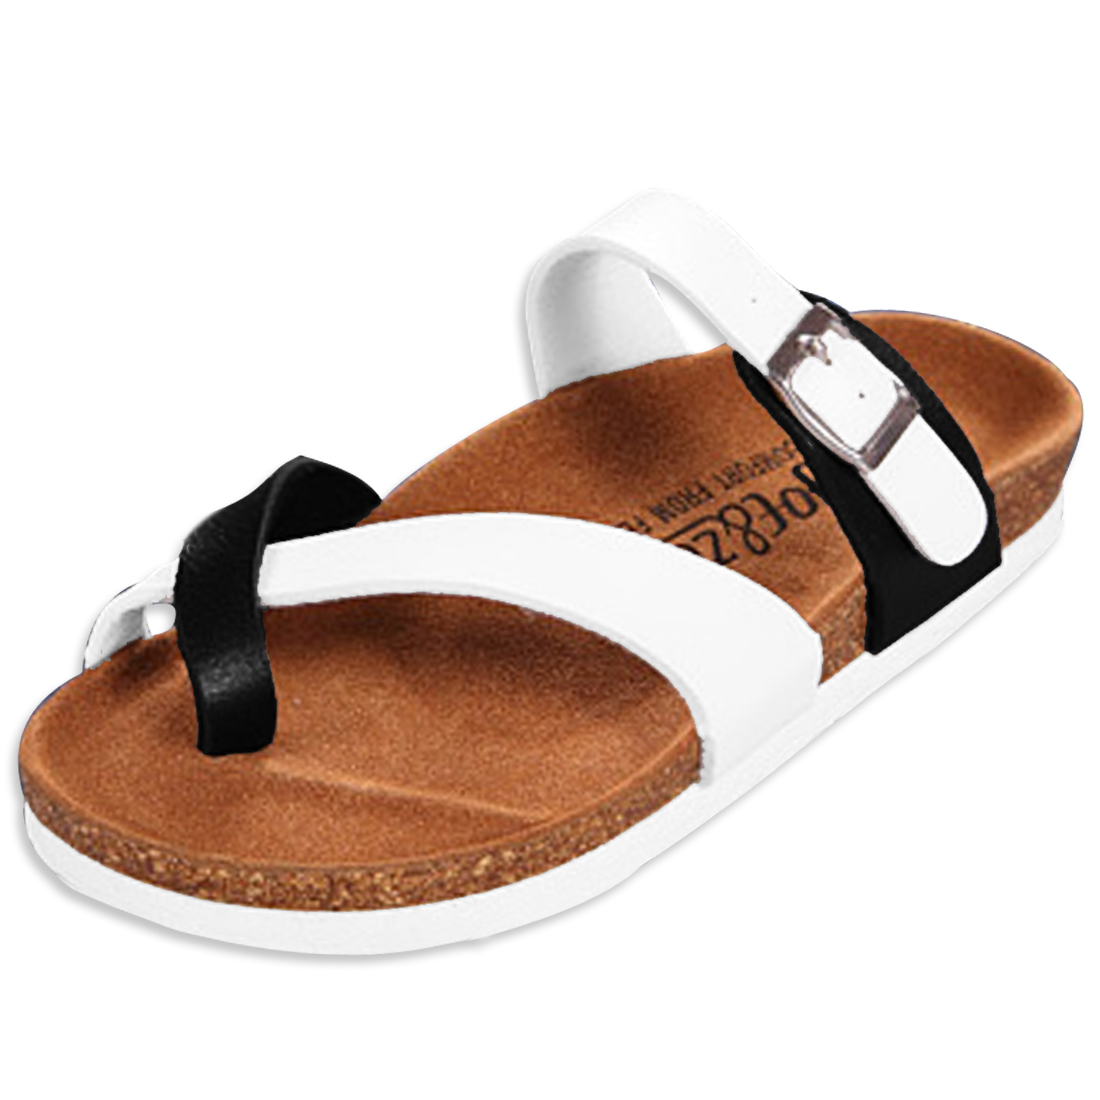 Holiday Unisex Black White Slide Sandals US 9